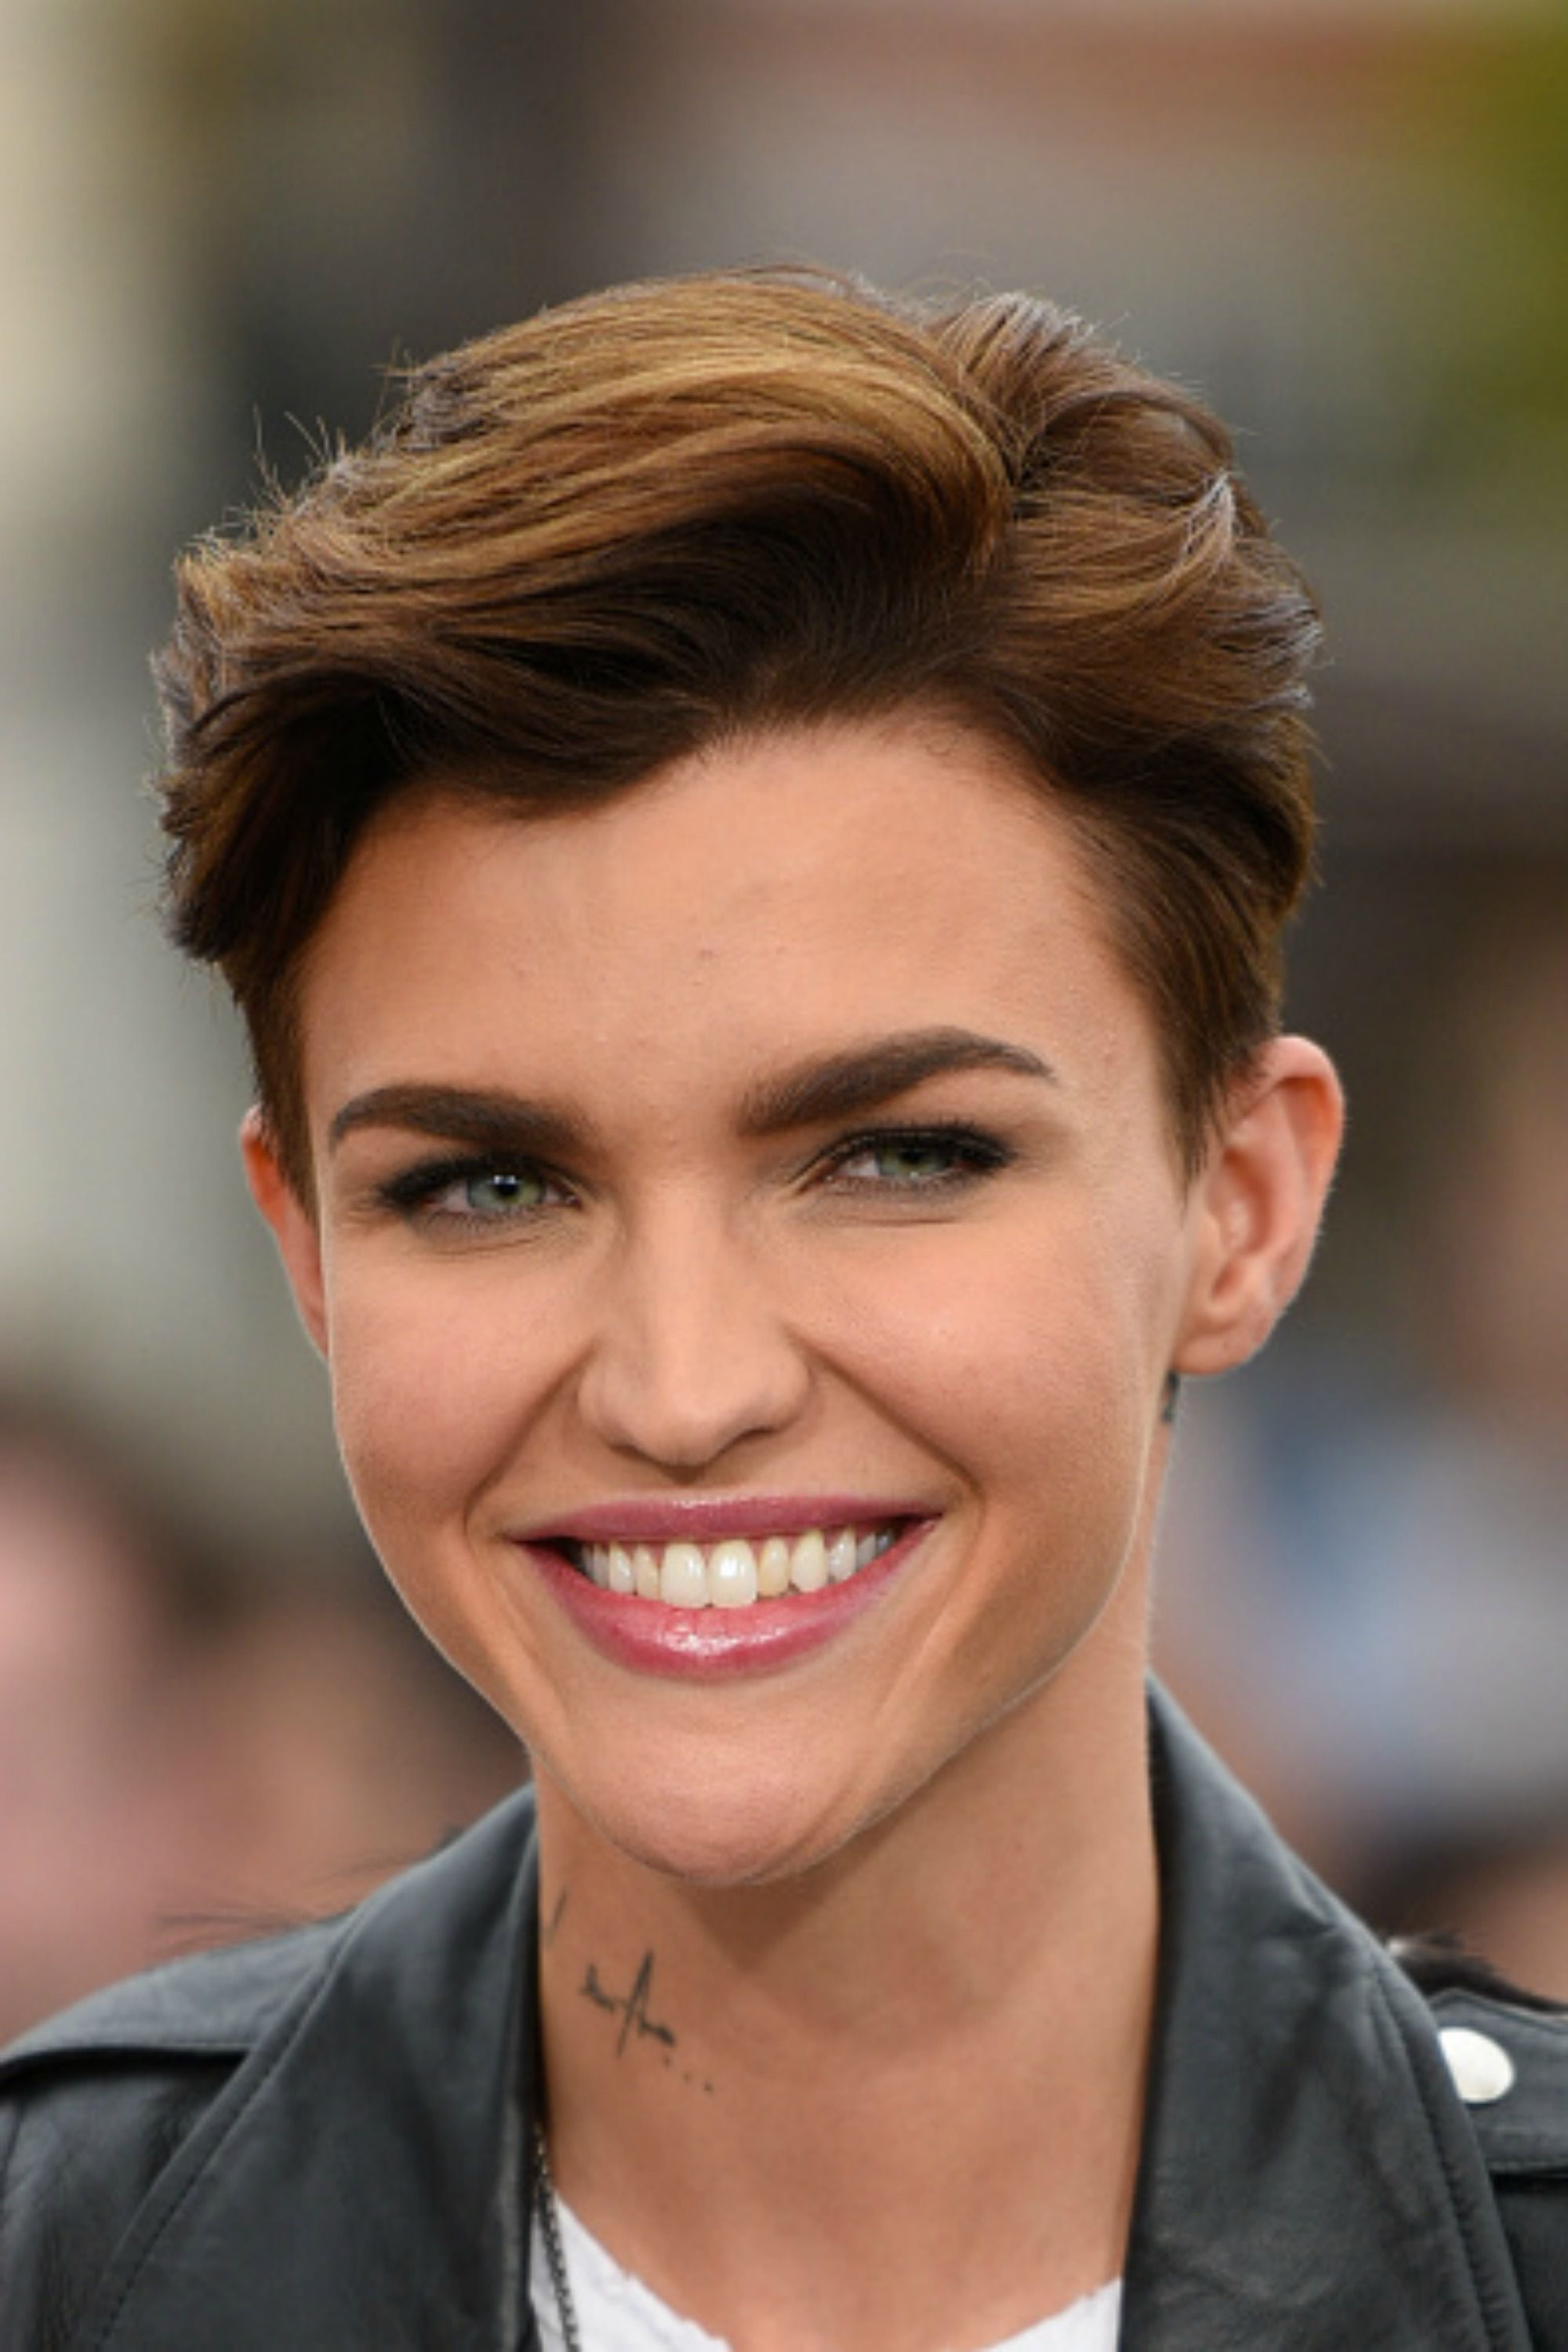 30 Short Hairstyles For Thick Hair 2017 – Women's Haircuts For Short With Regard To Medium Short Haircuts For Thick Wavy Hair (View 10 of 25)